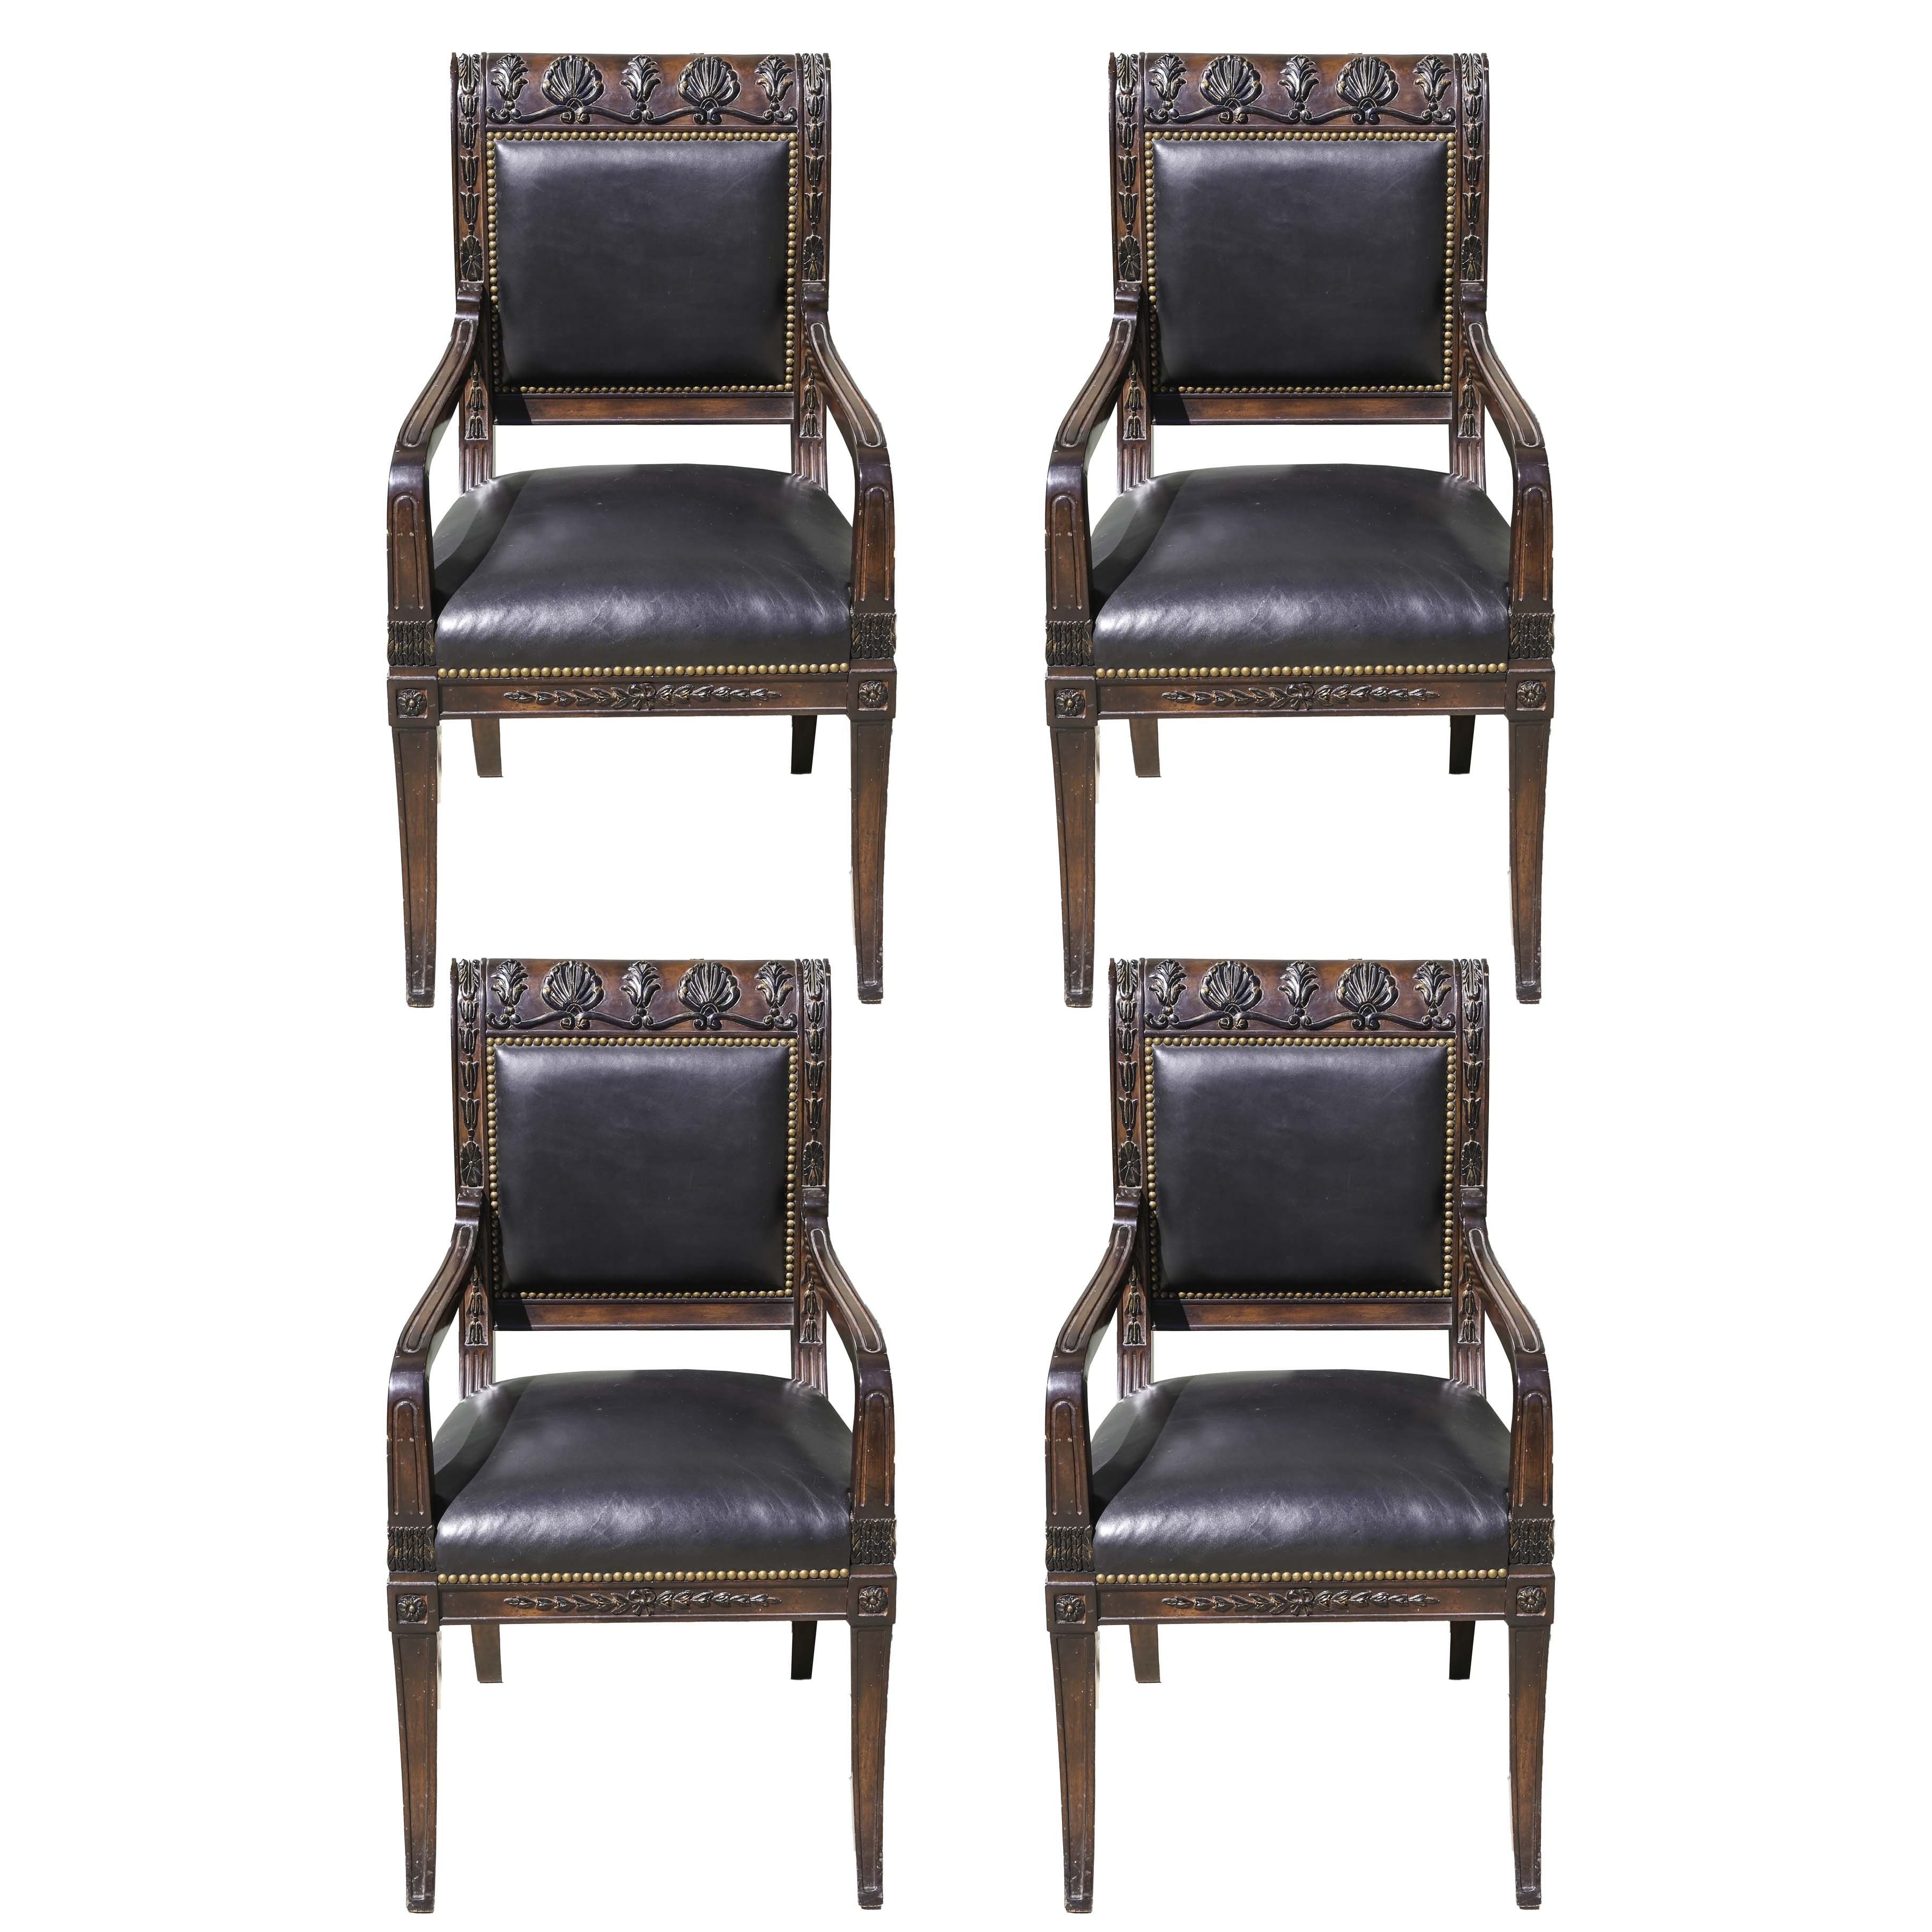 Four Directoire Style Parcel-Ebonized Mahogany Stained Fauteuils